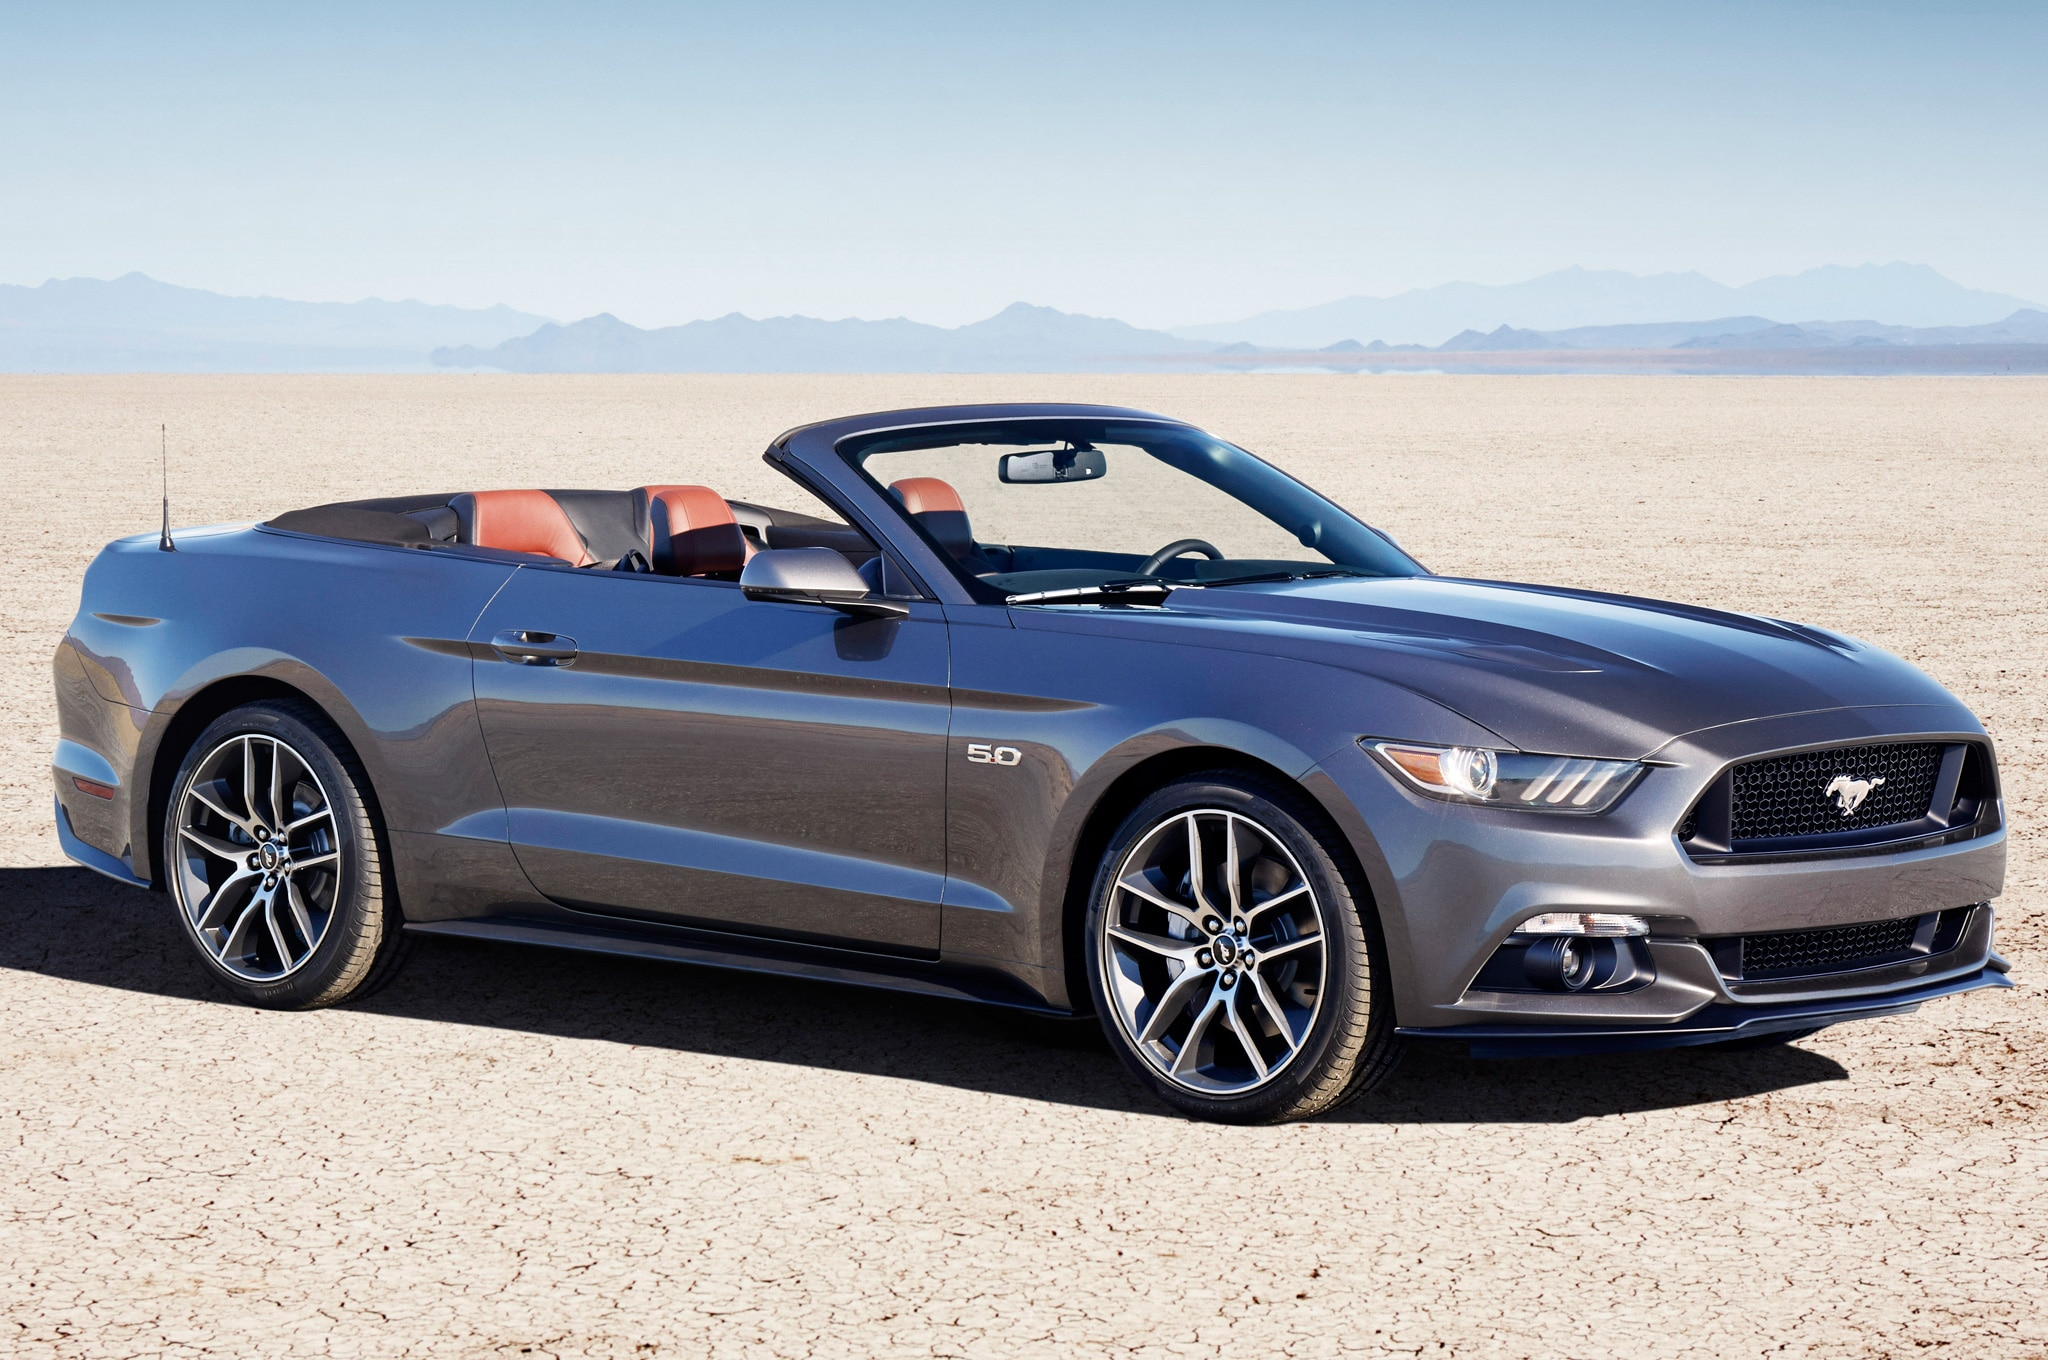 2015 Ford Mustang GT Convertible Front Three Quarter View1